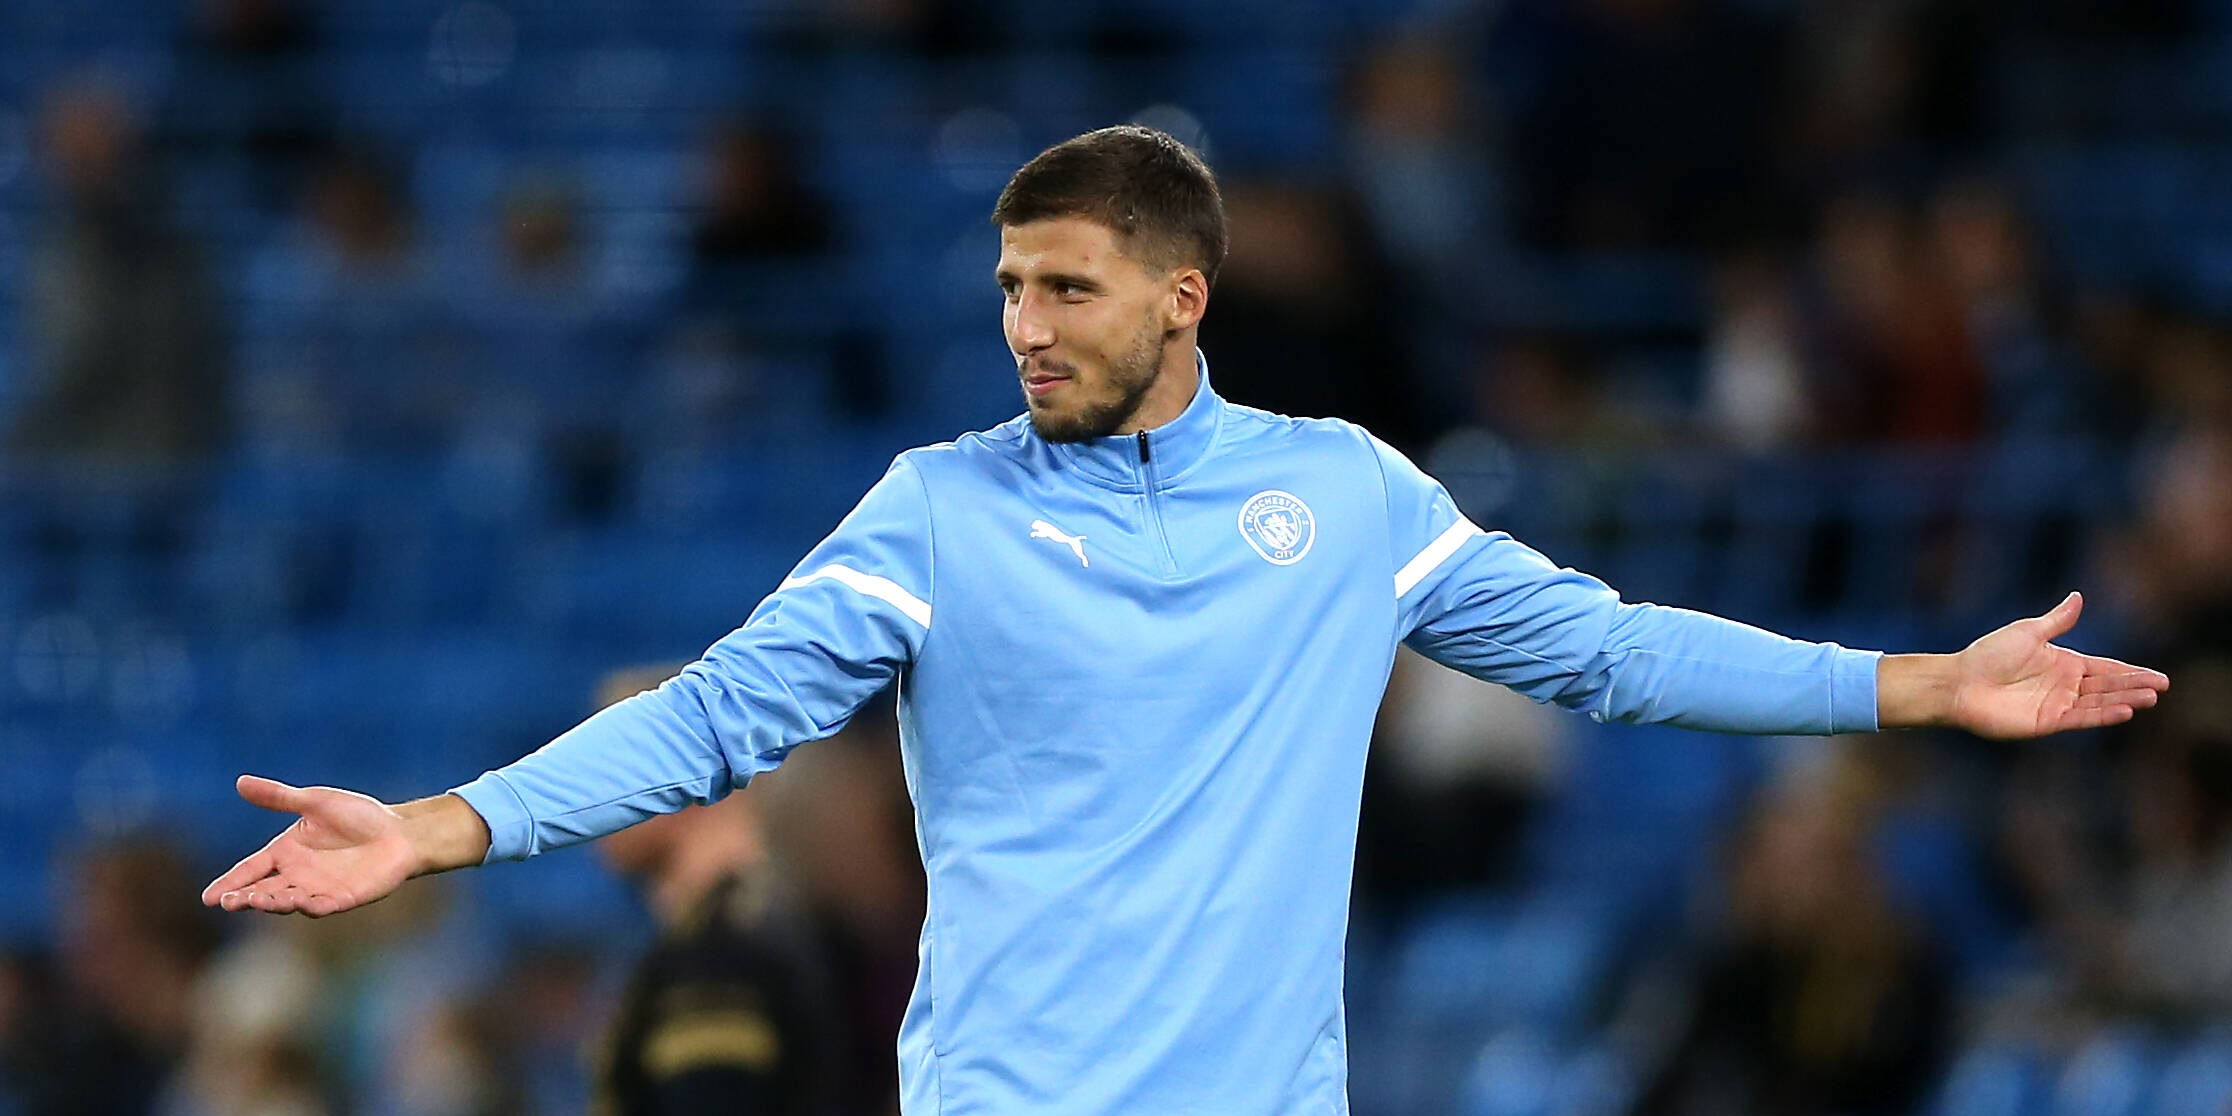 Ruben Dias fires Liverpool warning after Man City suffer Champions League defeat: 'We know what we need to do'